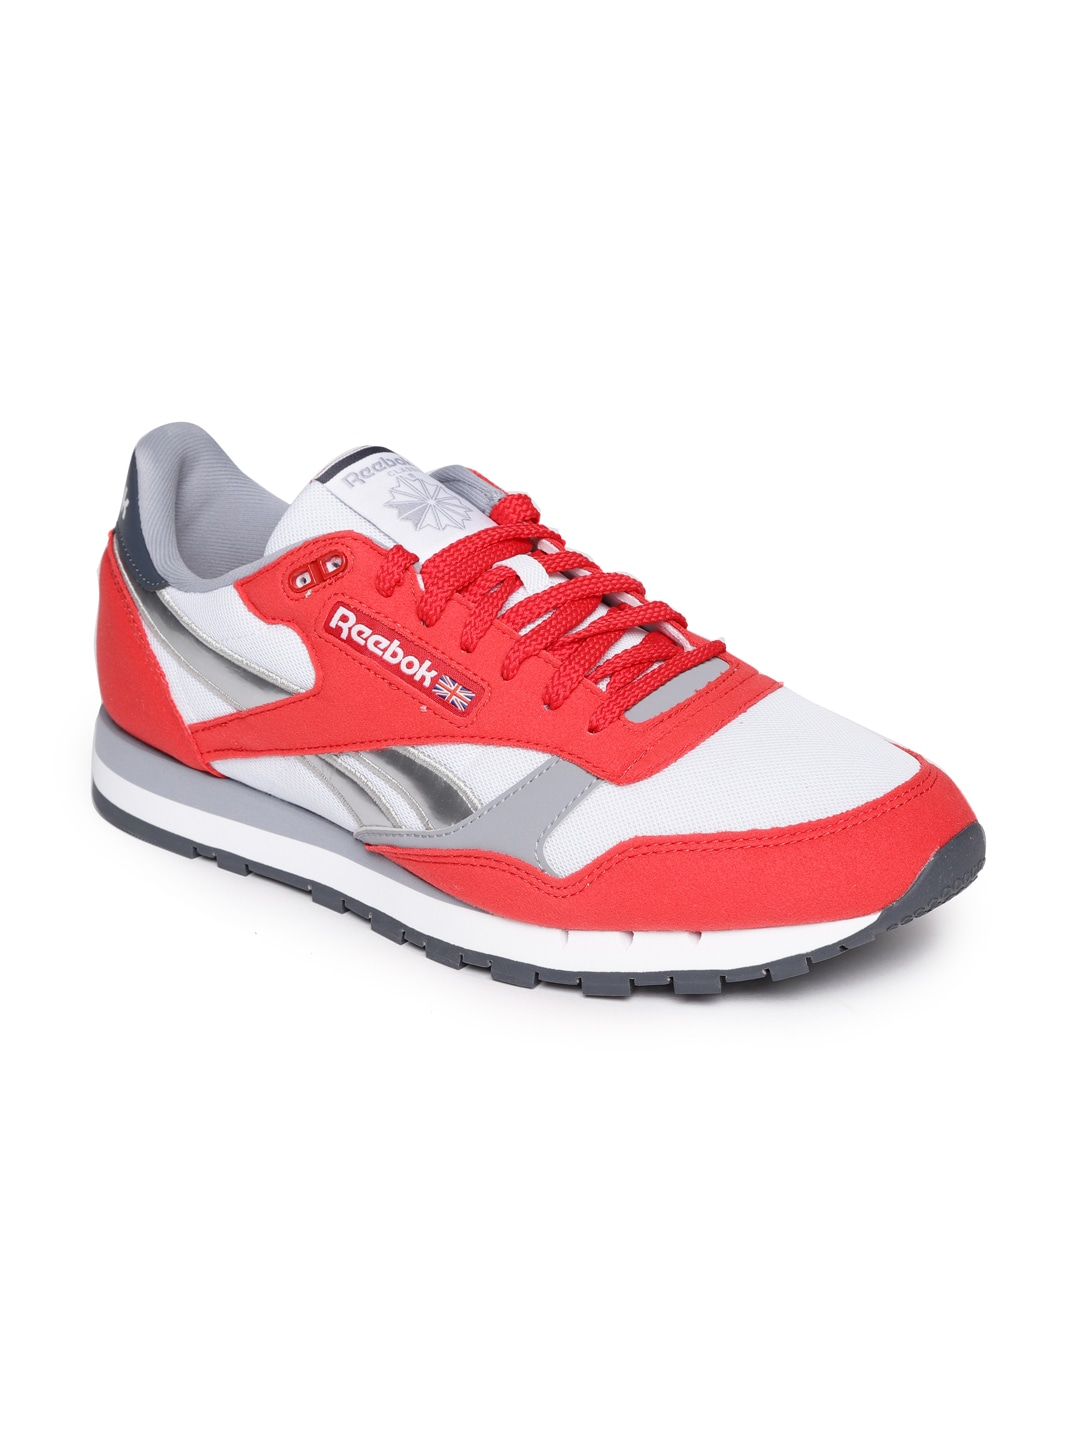 cb1255db97a60d Reebok Shoes Red And White - Buy Reebok Shoes Red And White online in India